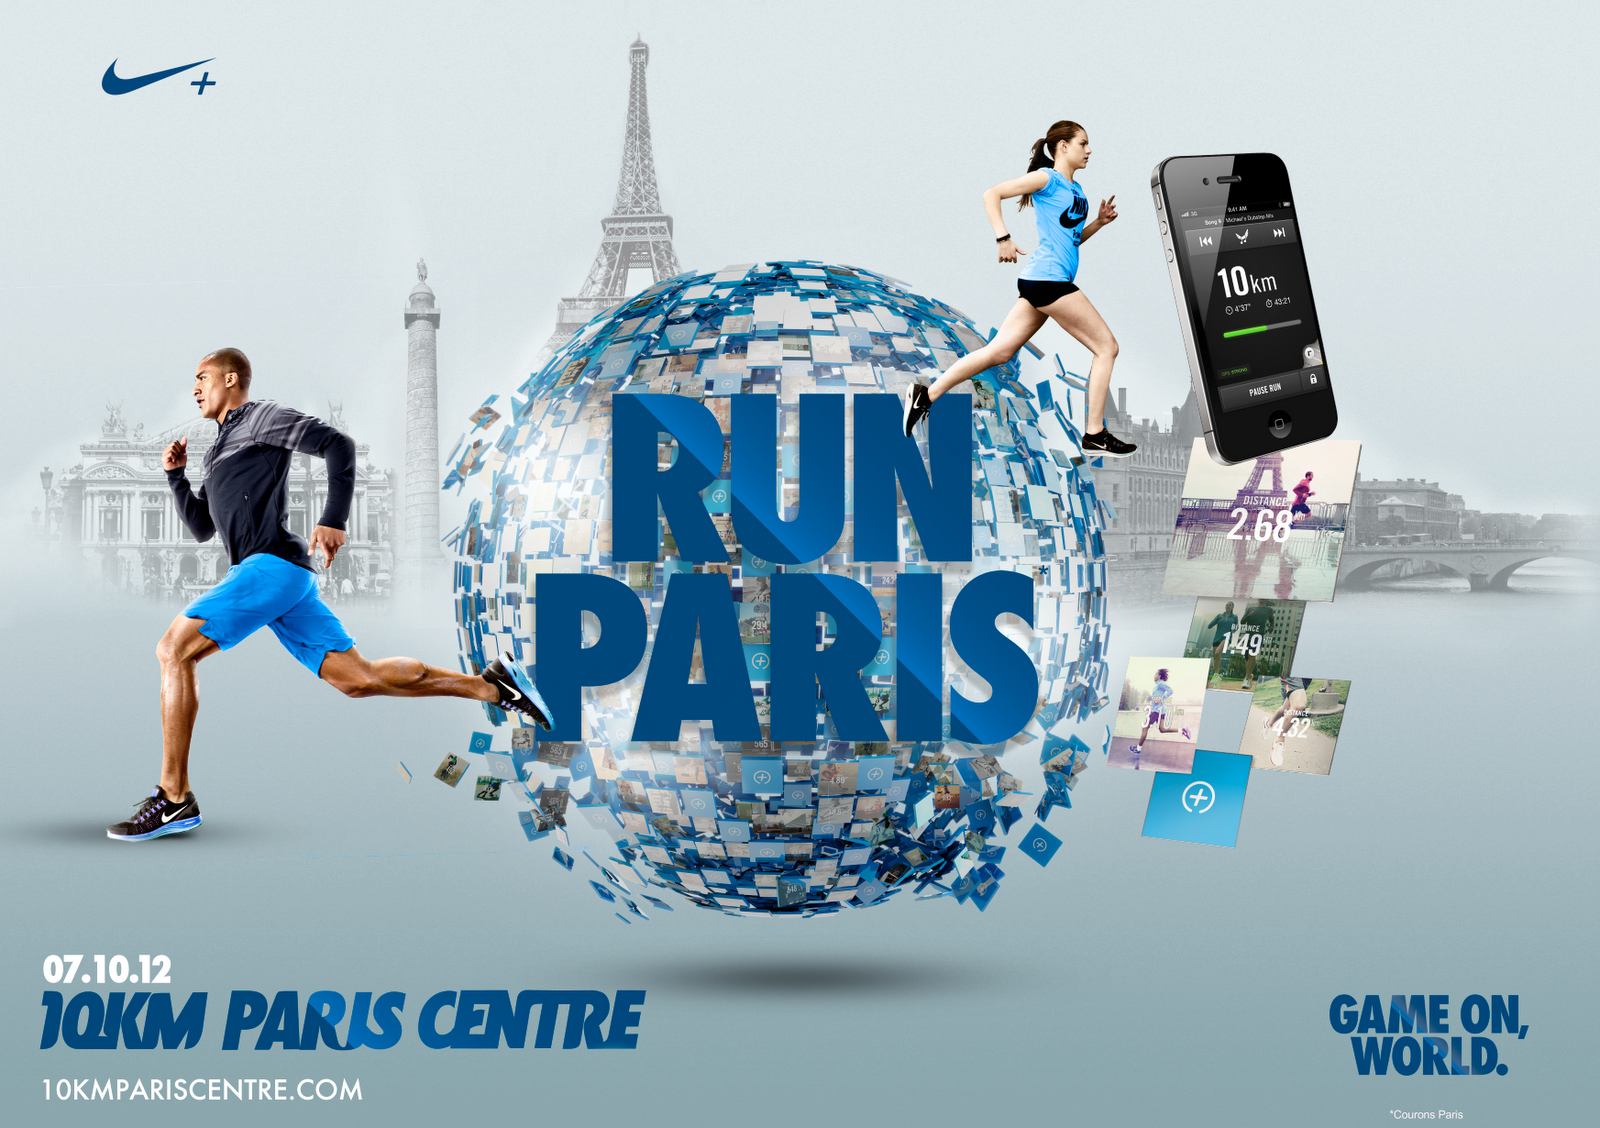 10km-paris-centre-nike-running.png (1600×1128)